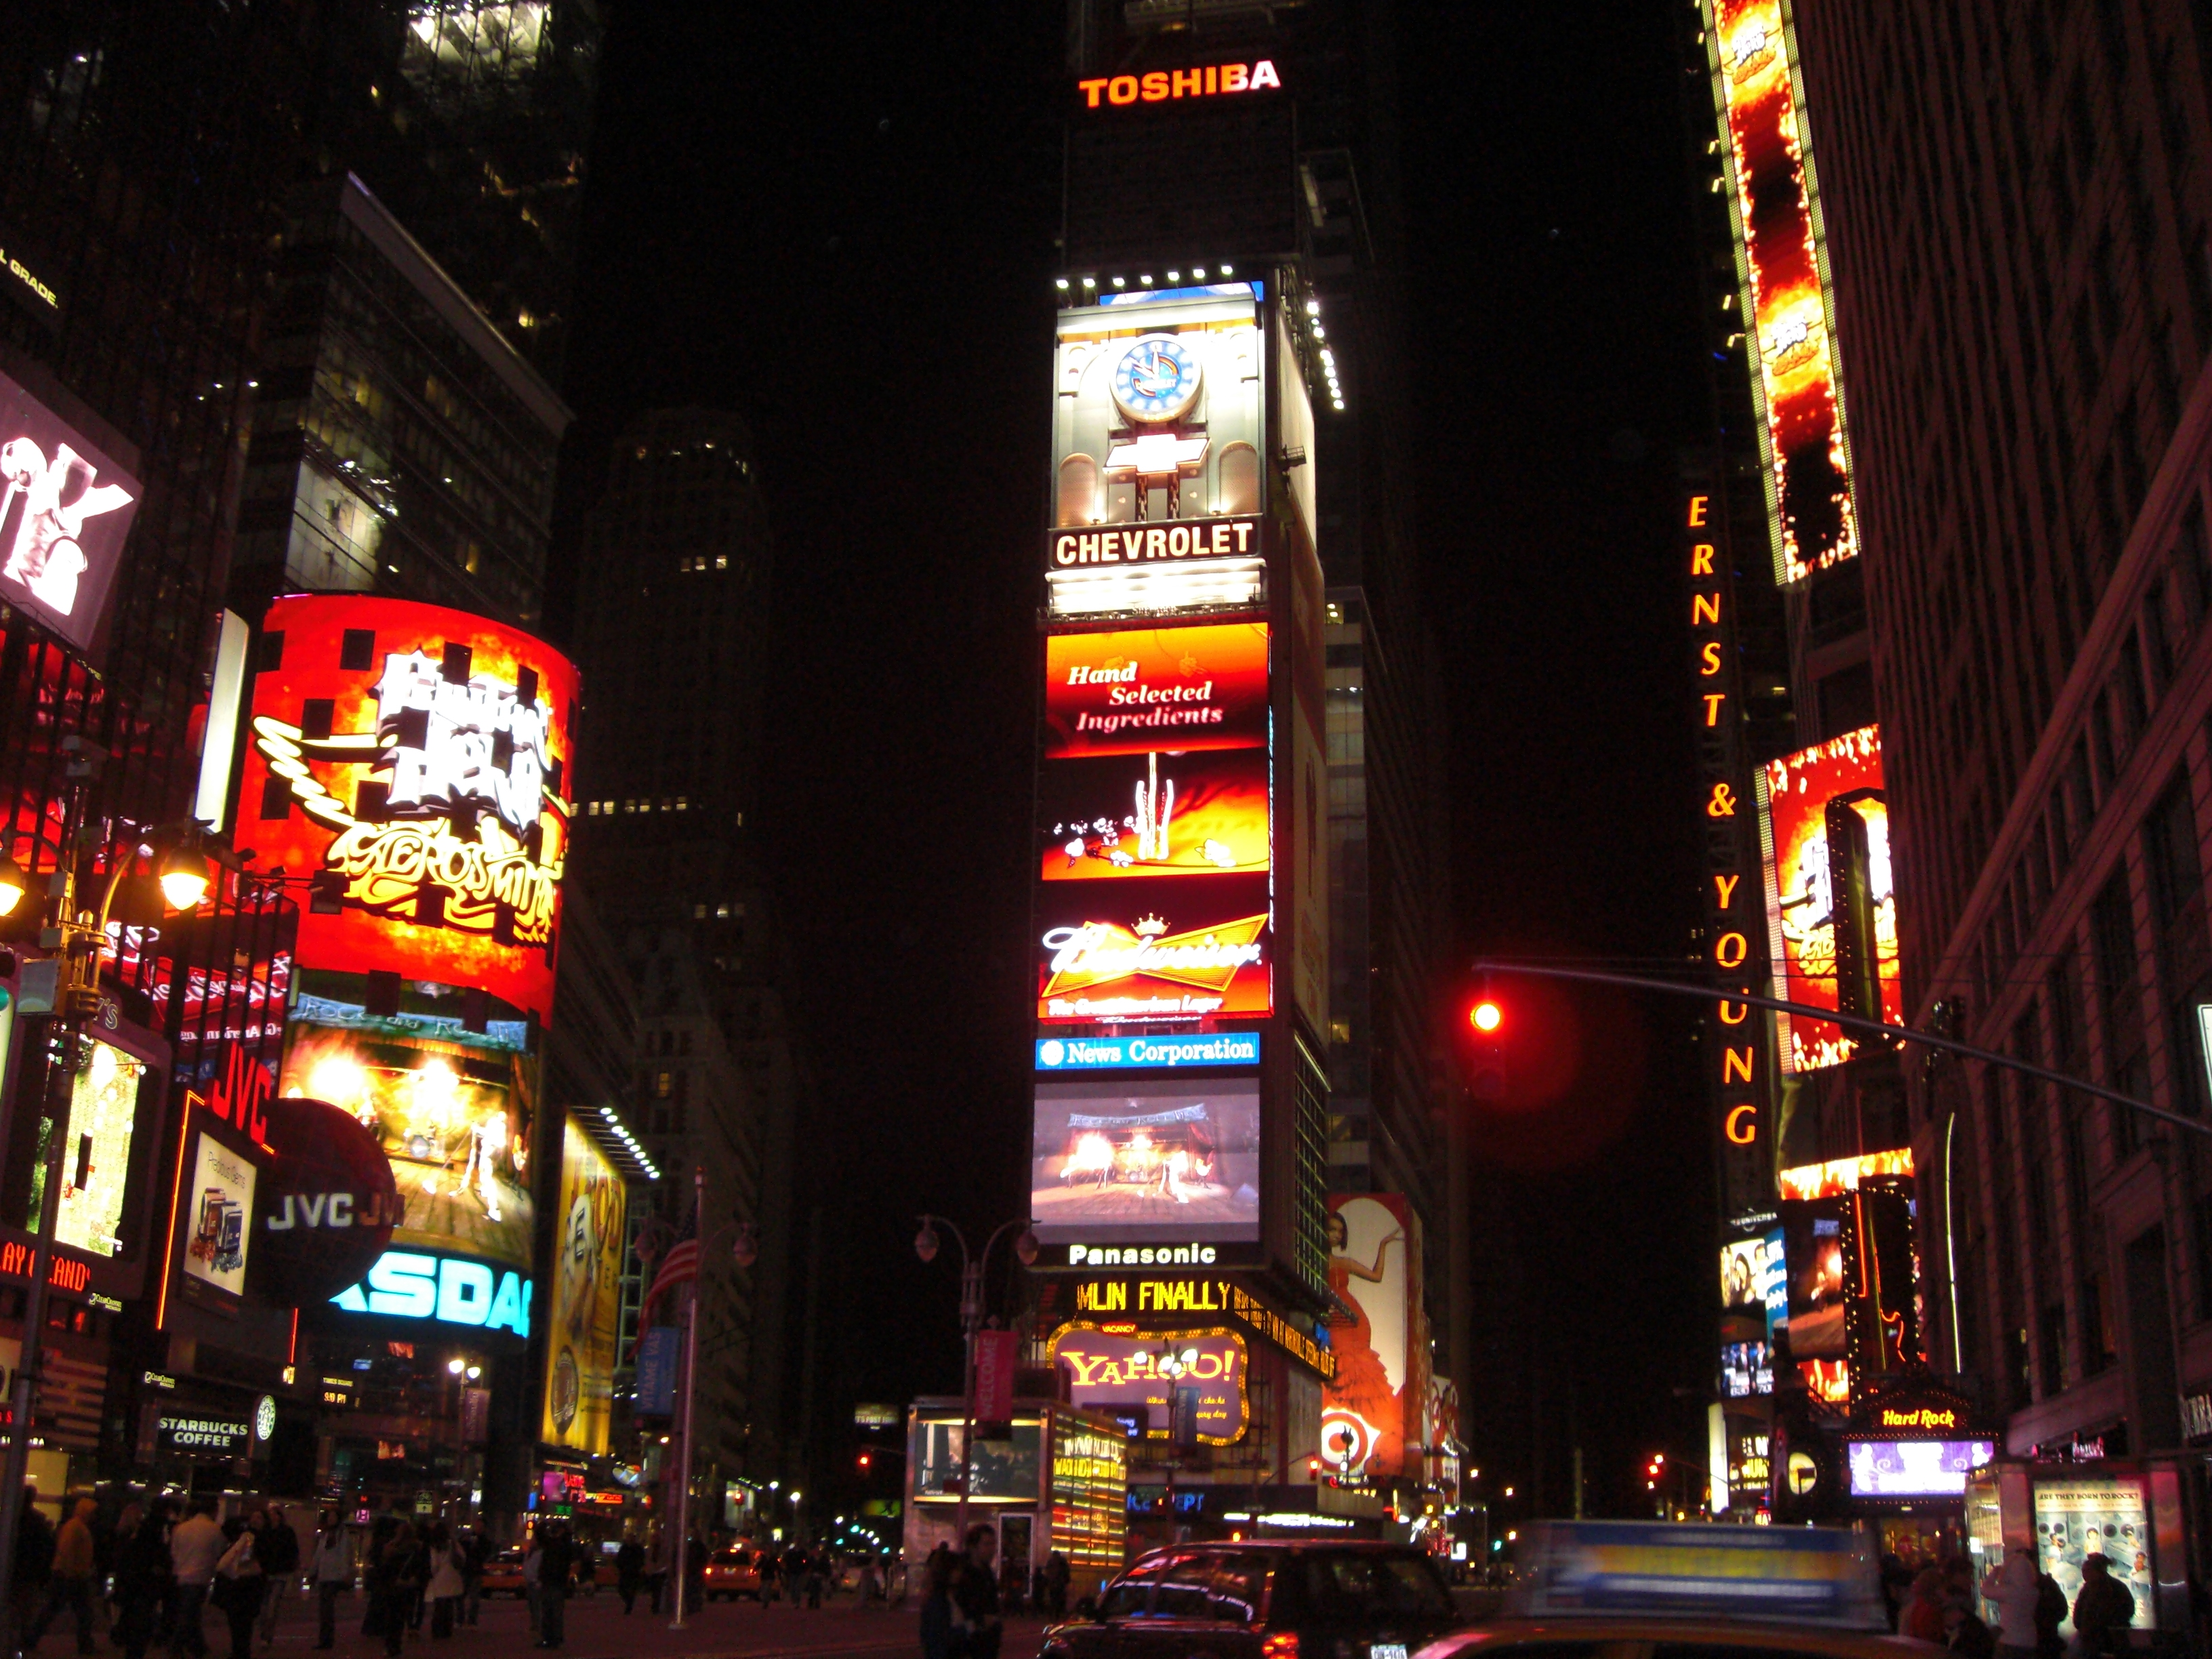 File:Times Square, New York, USA1.jpg - Wikimedia Commons